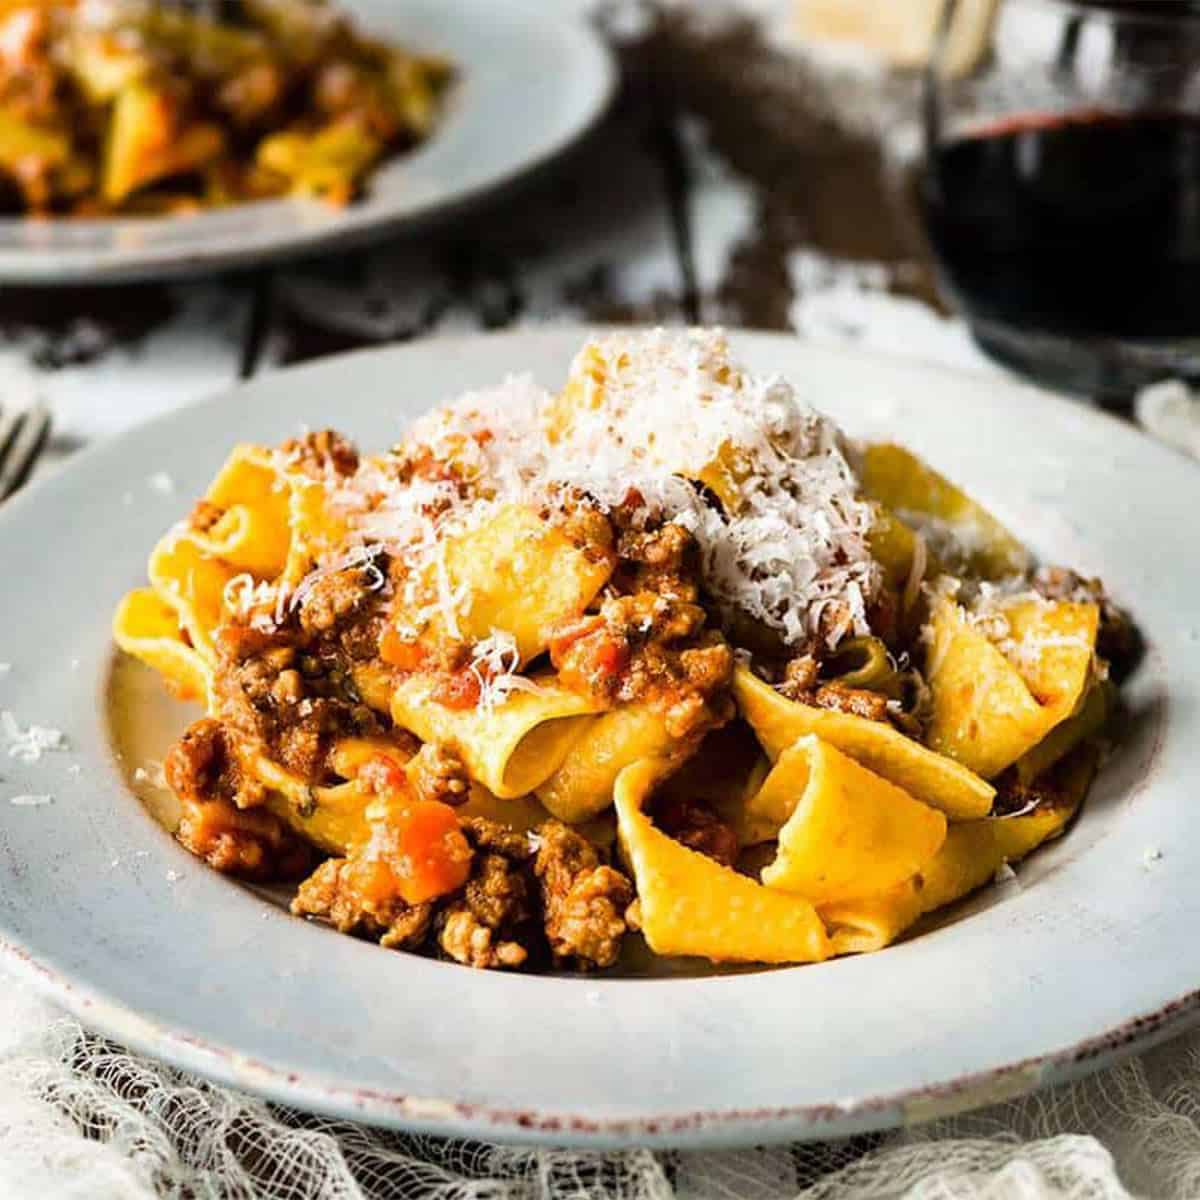 Homemade bolognese with pappardelle up close on a plate